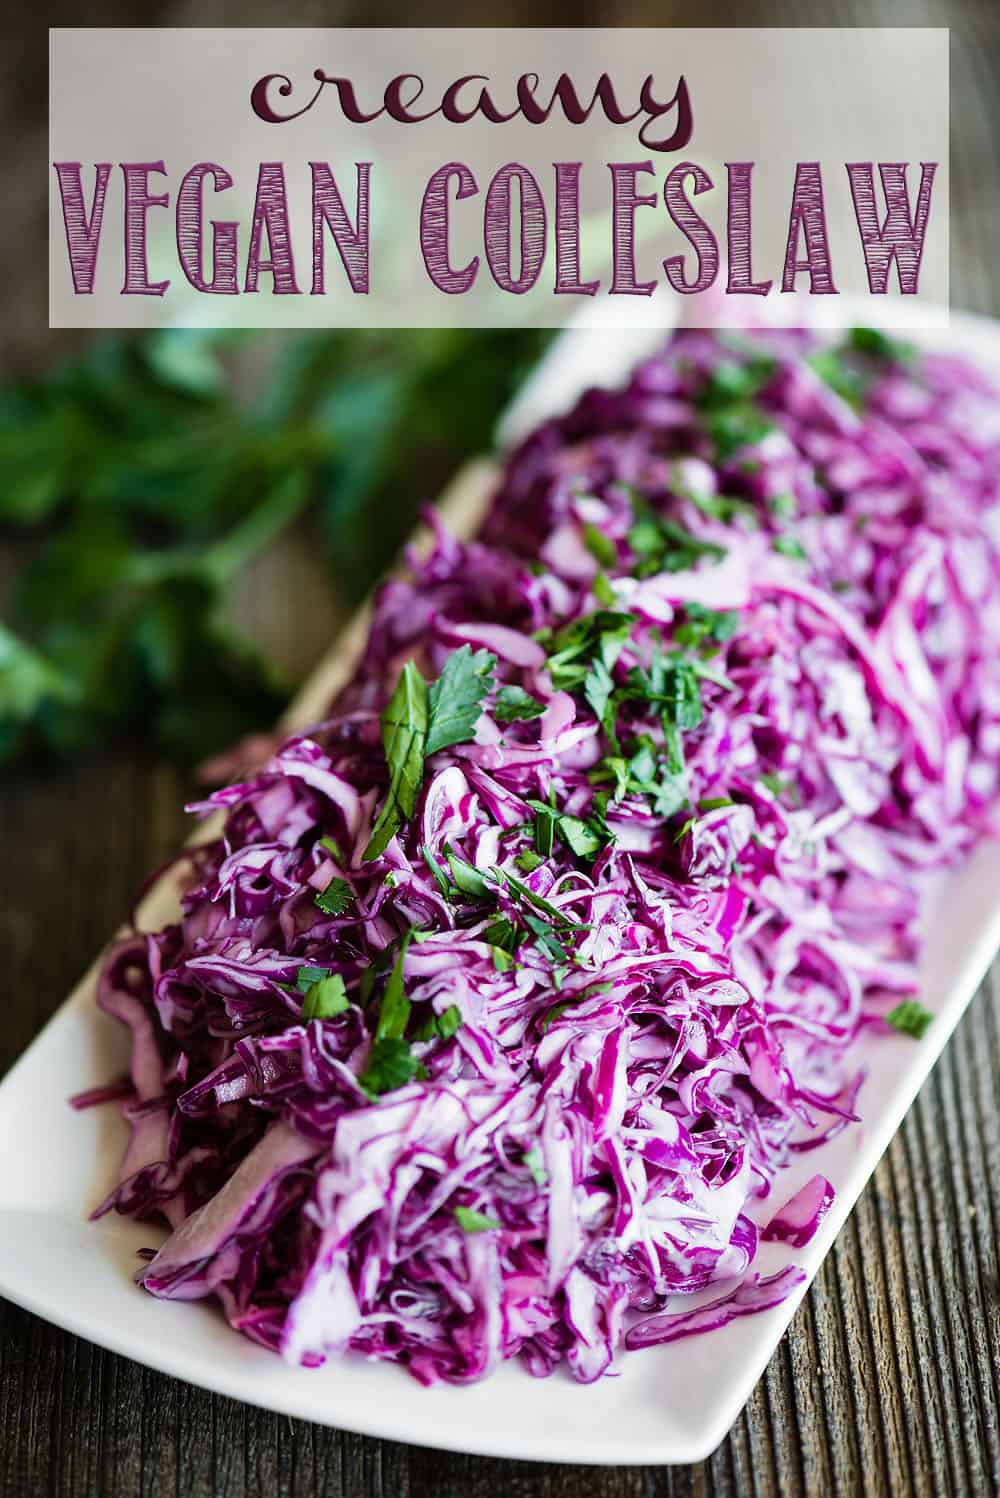 If you're looking for a tasty creamy coleslaw recipe that can be served to most anyone because there is no dairy nor eggs, this Creamy Vegan Coleslaw is the recipe you want! #coleslaw #vegan #vegancoleslaw #coleslawrecipe #coleslawdressing #healthycoleslaw #creamycoleslaw #vegancoleslawrecipe #vegancoleslawdressing #creamyvegancoleslaw #easyvegancoleslaw #dairyfreecoleslaw